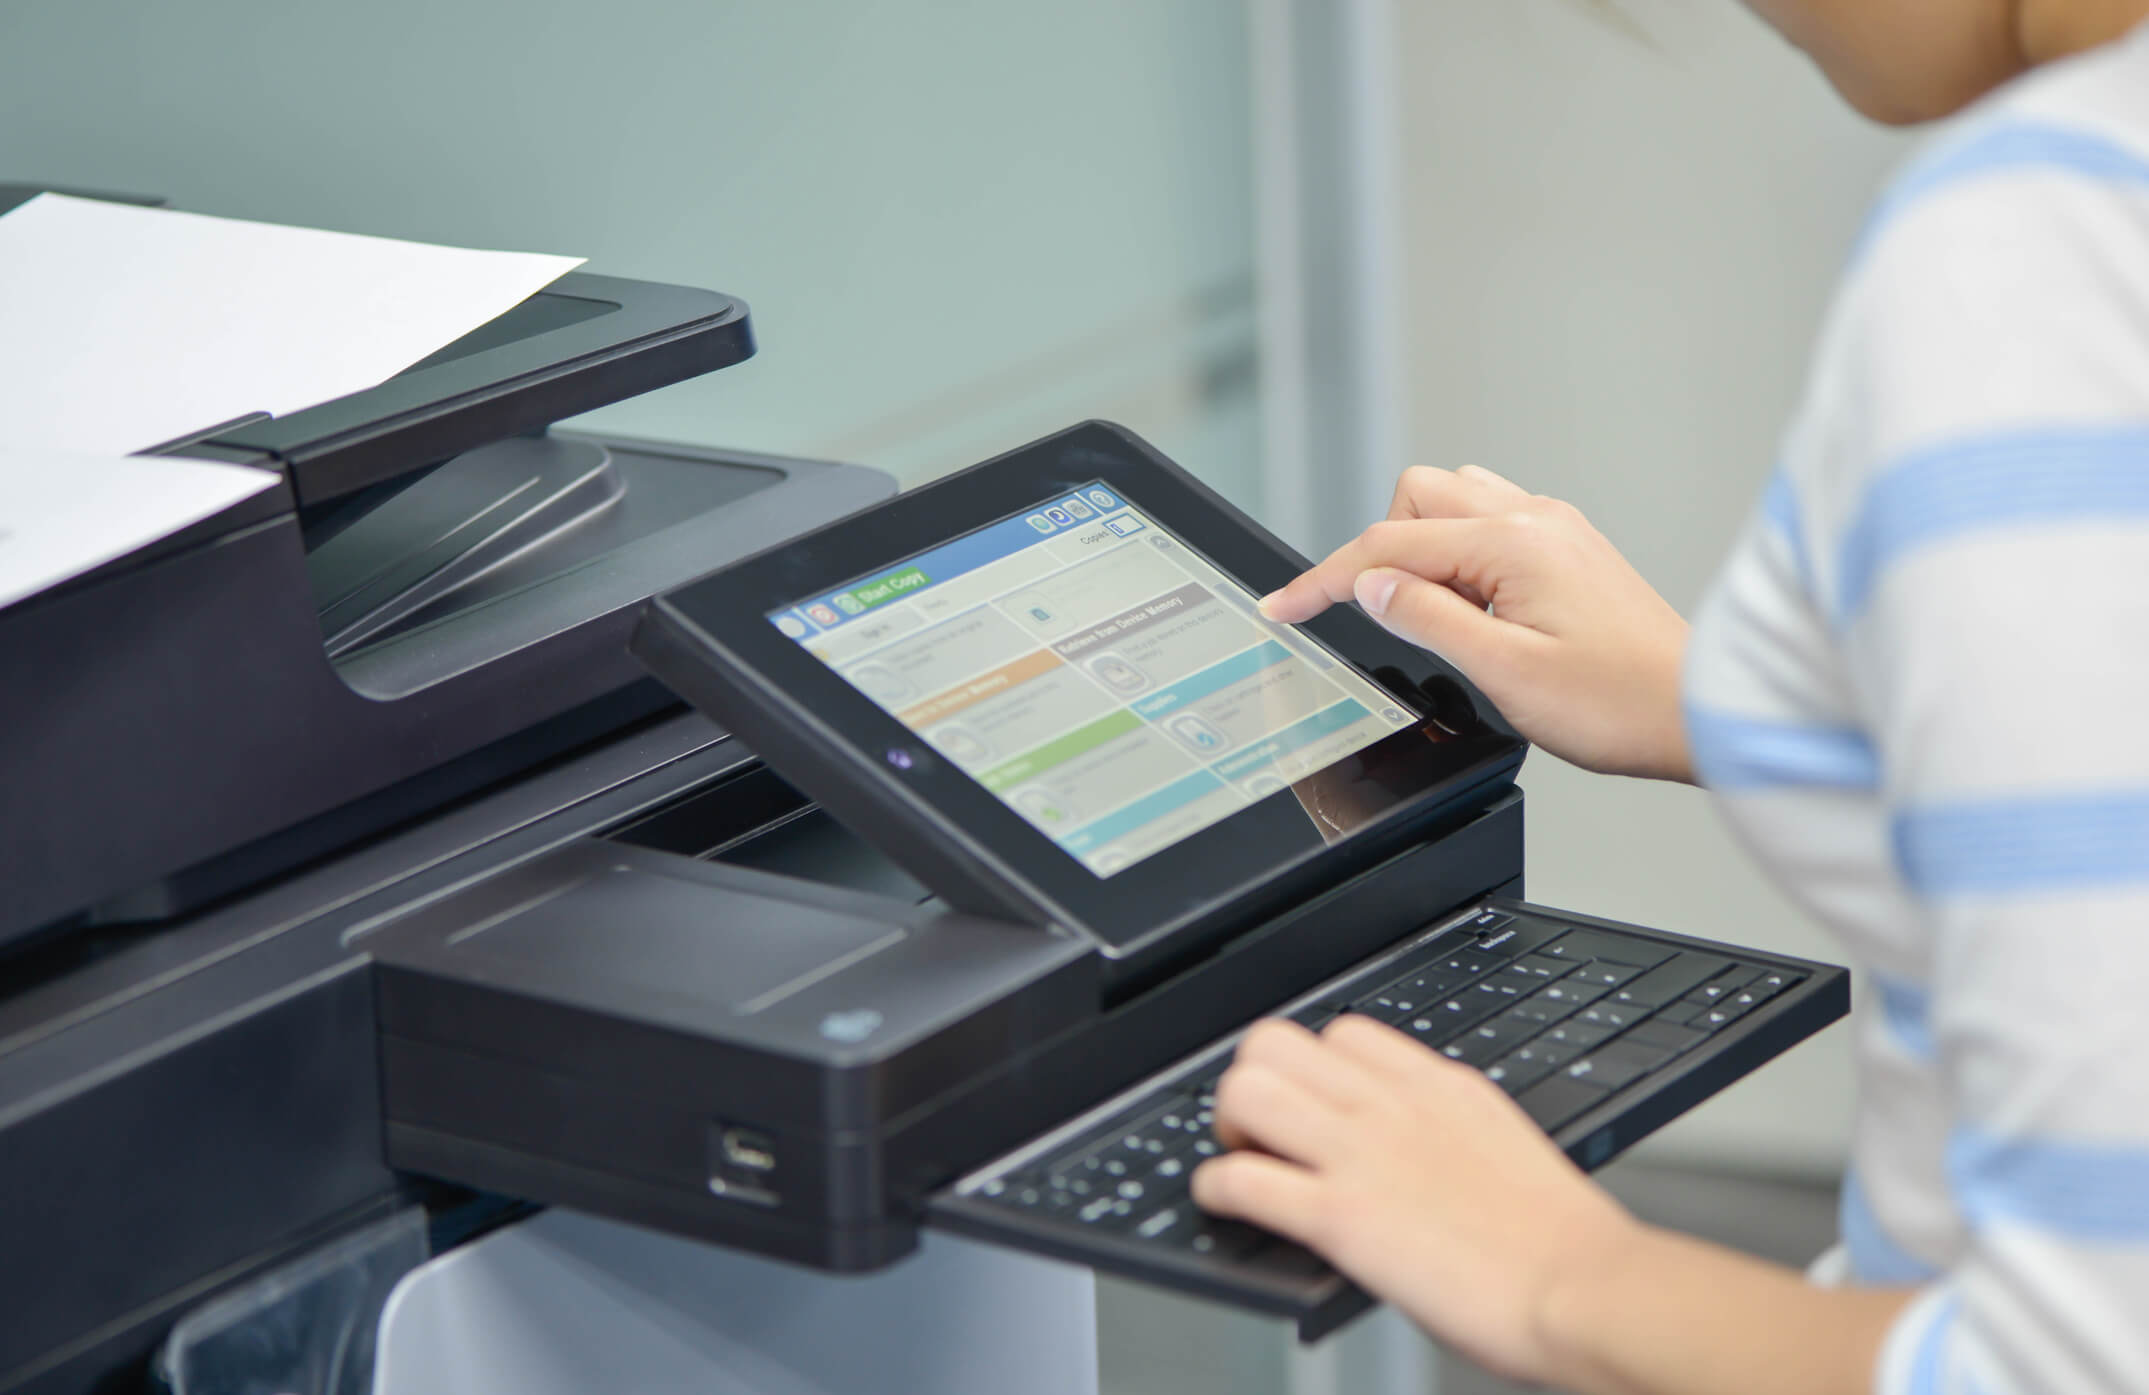 Copier Meter Readings: Necessary Evil or Important Tool for DC Businesses?